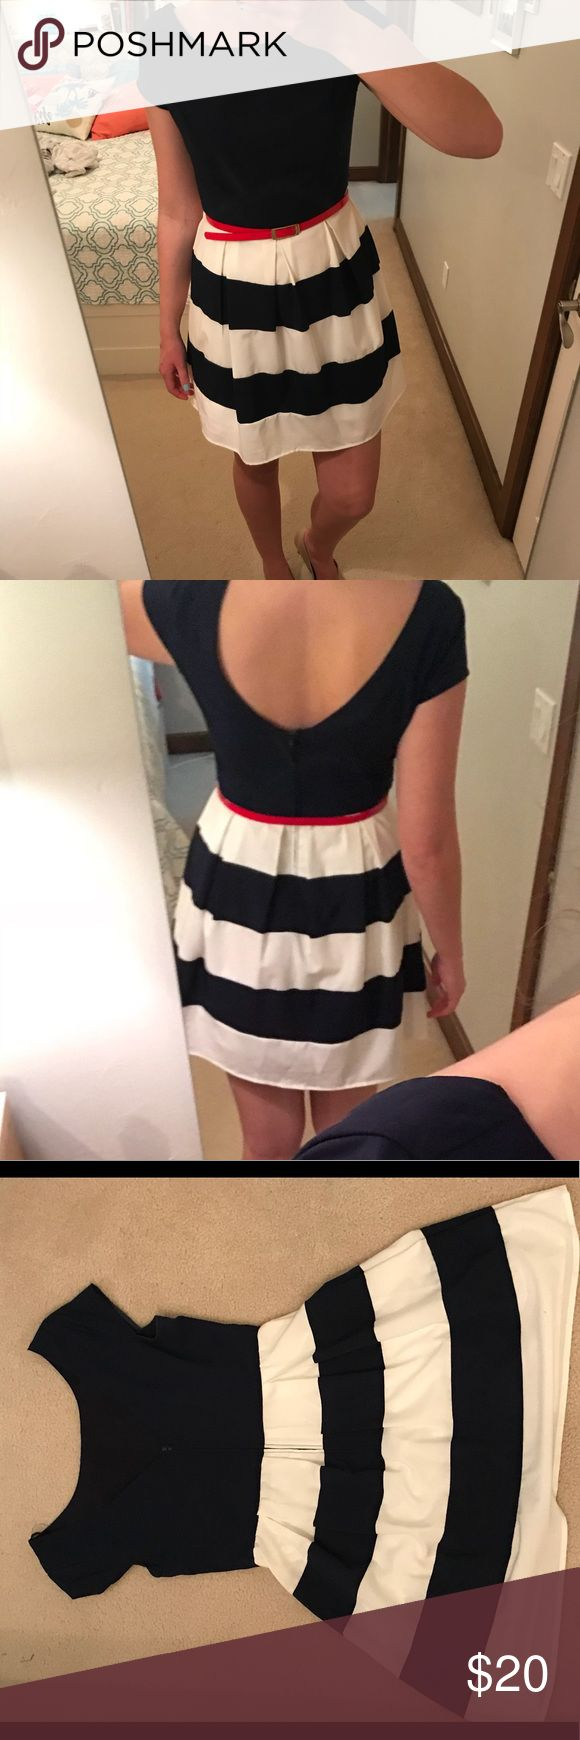 Navy blue white striped dress with belt Navy blue dress with white stripes. Flared skirt. Bright red belt included. Zip up back. Low-rise back. 94% polyester 4% spandex. Super comfortable. Looks great with gold jewelry B. Smart Dresses Mini